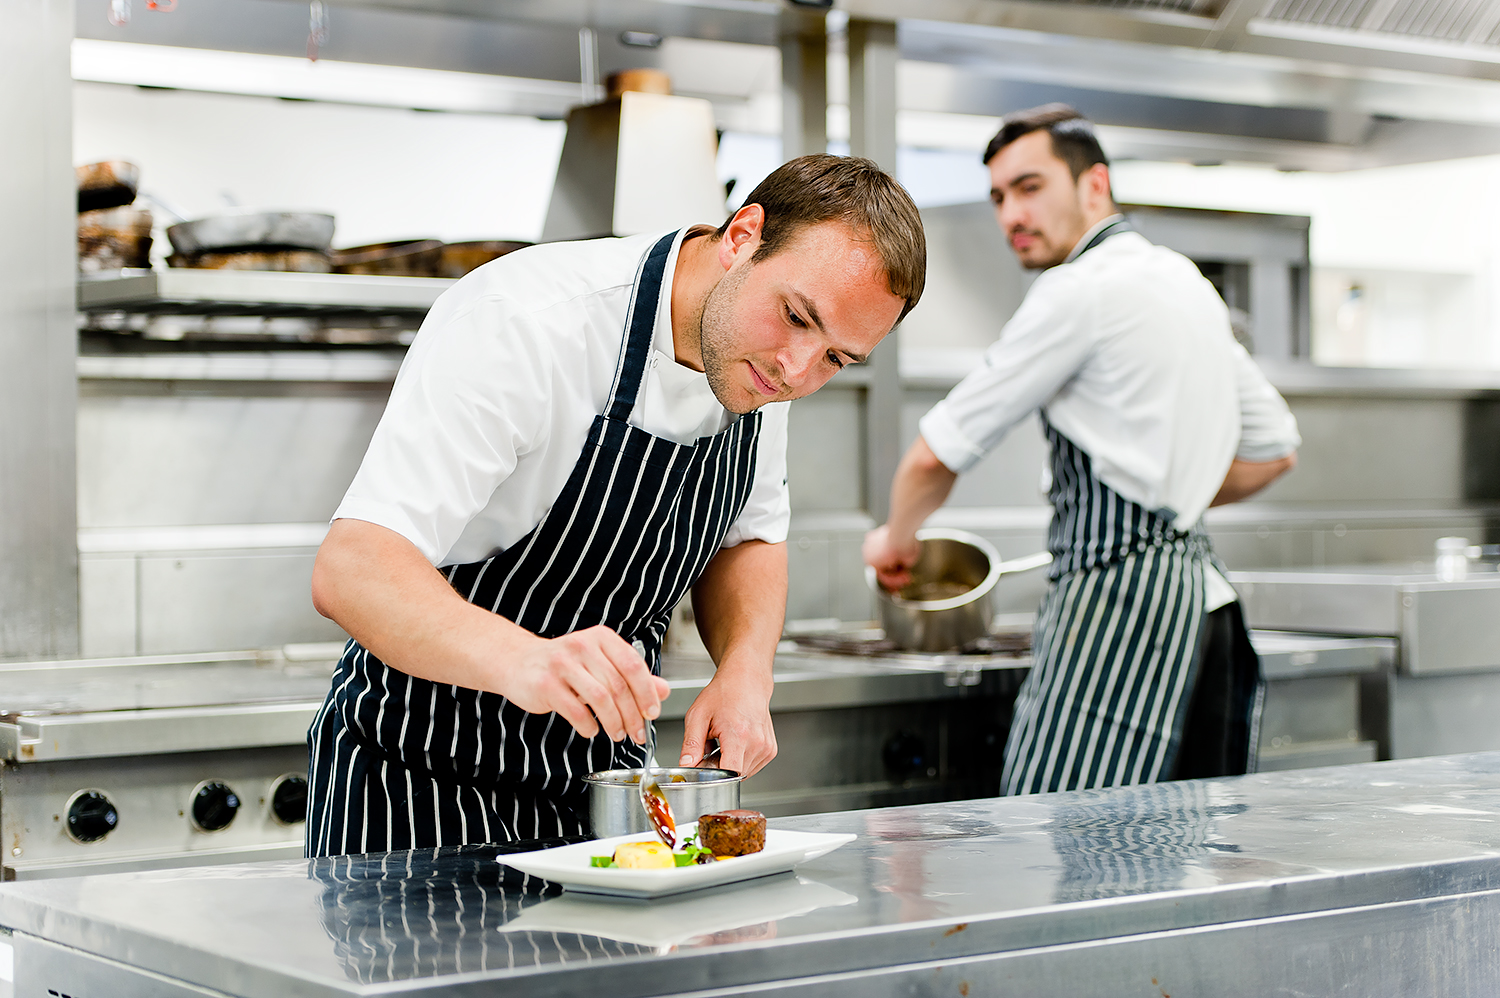 lifestyle-photography-dorset-kings-college-events-chef3.jpg